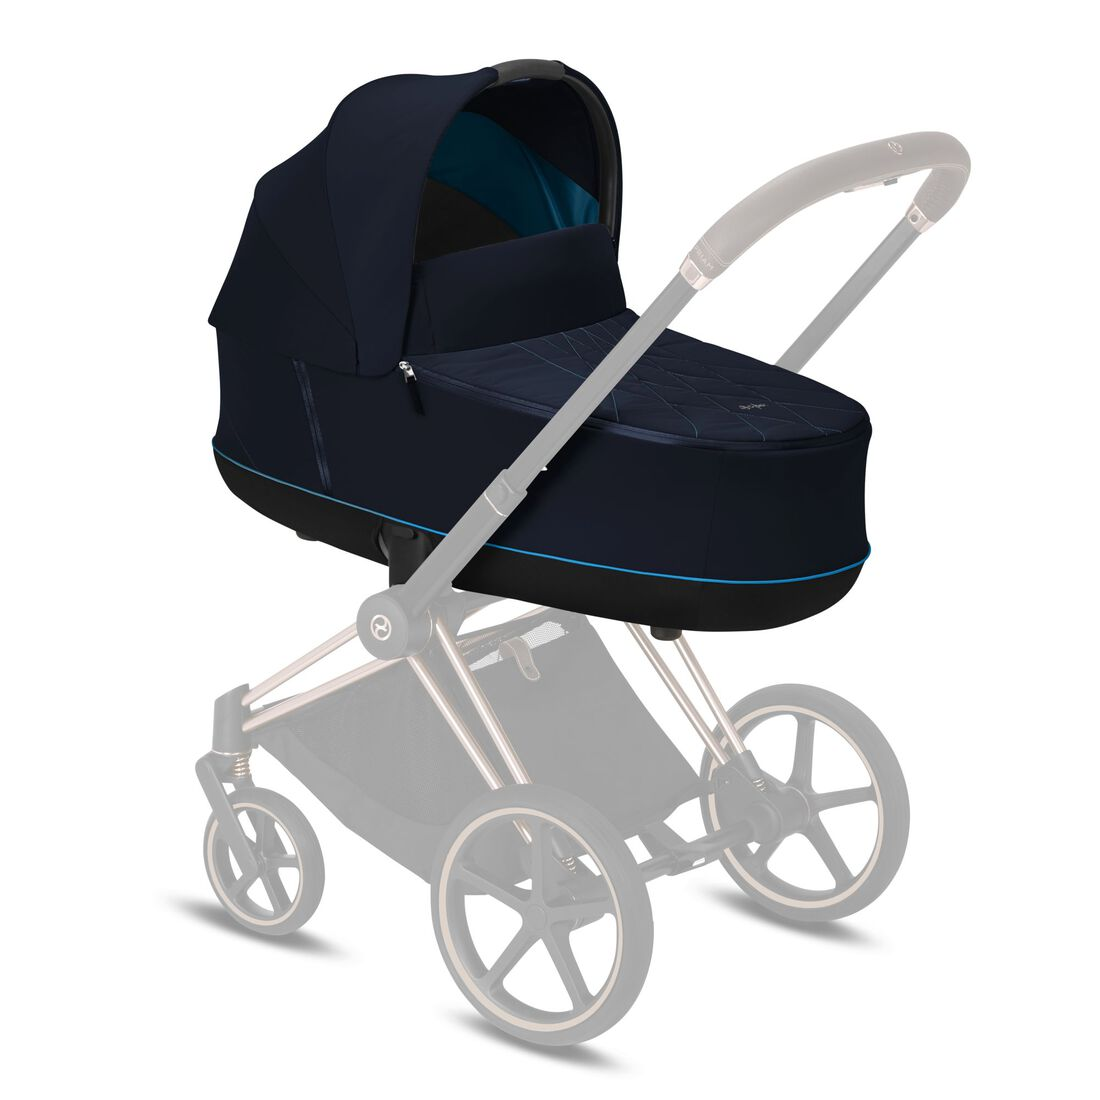 CYBEX Priam Lux Carry Cot - Nautical Blue in Nautical Blue large image number 5